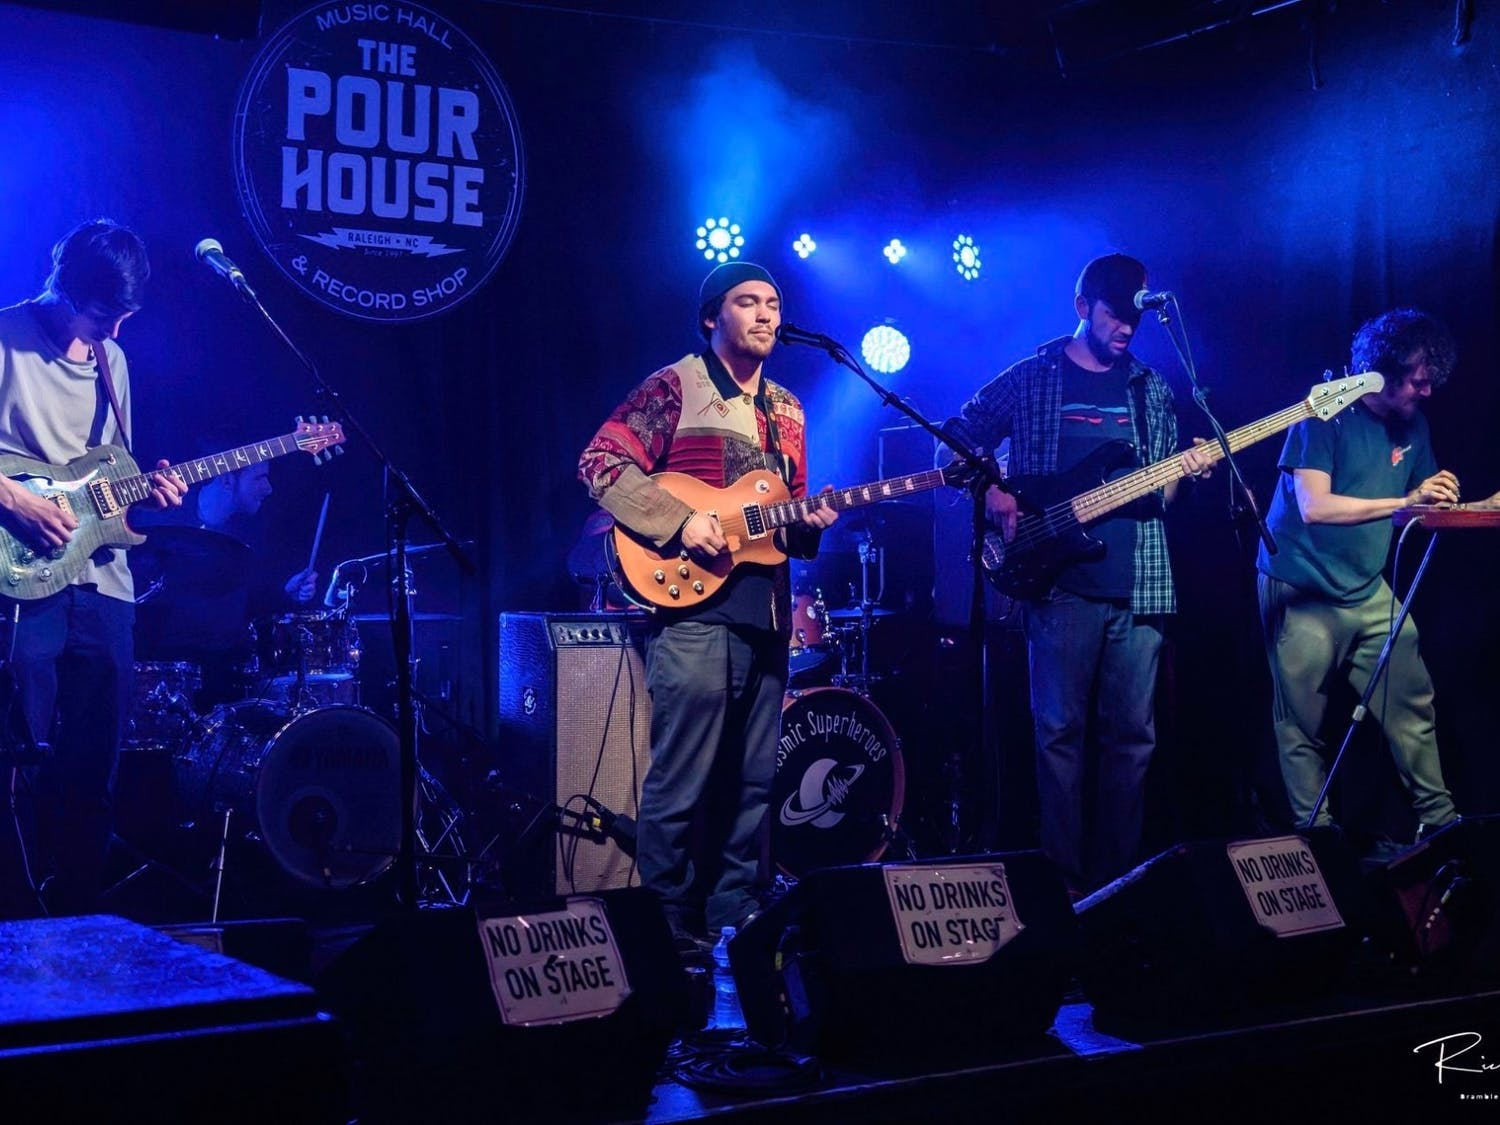 Photo of the Awen Family Band performing their music at The Pour House. Photo courtesy of Tim Husk.